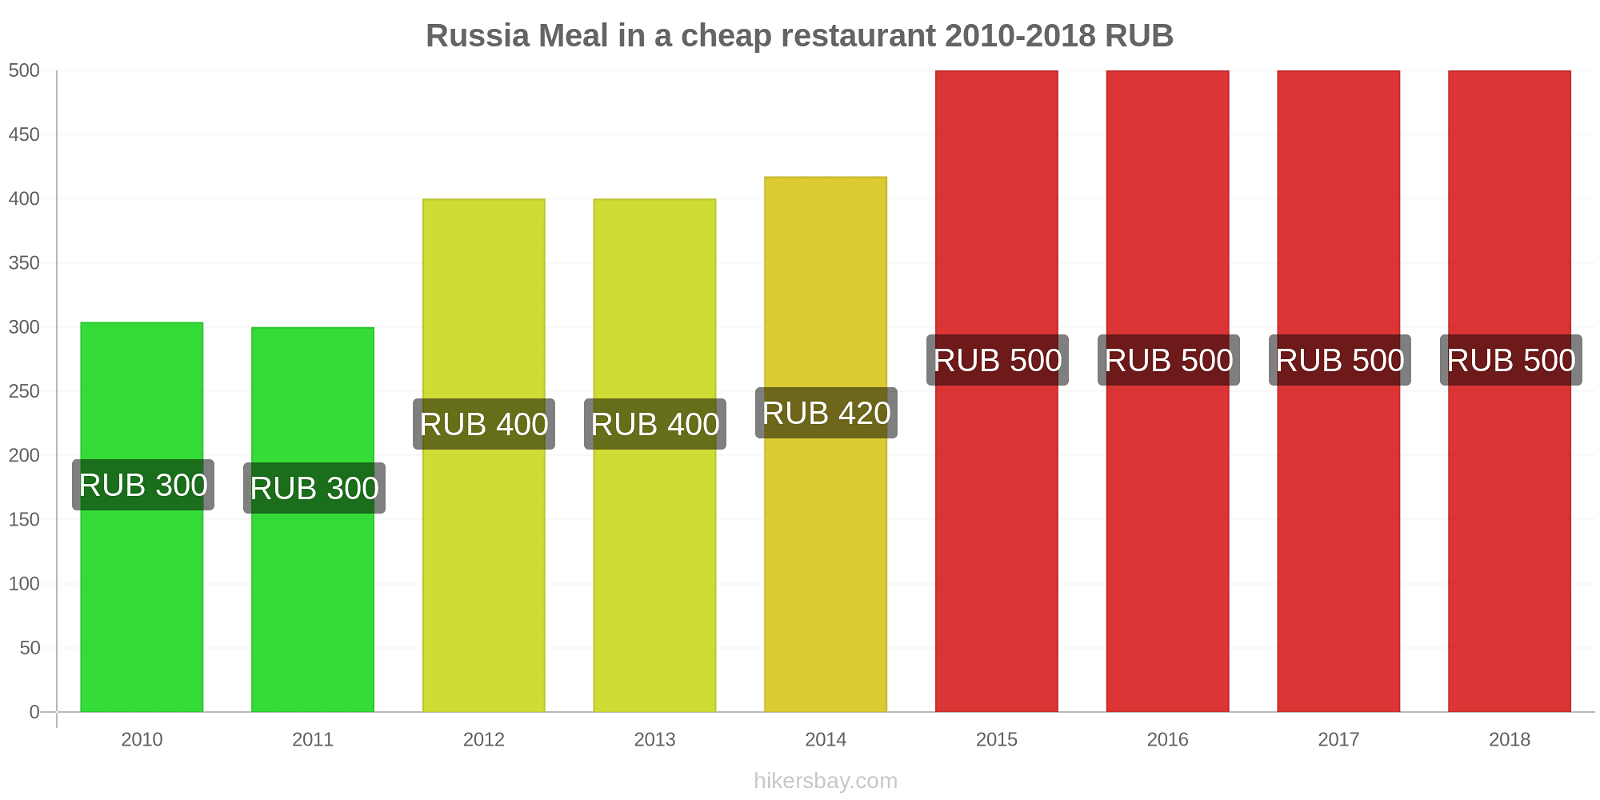 Russia price changes Meal in a cheap restaurant hikersbay.com